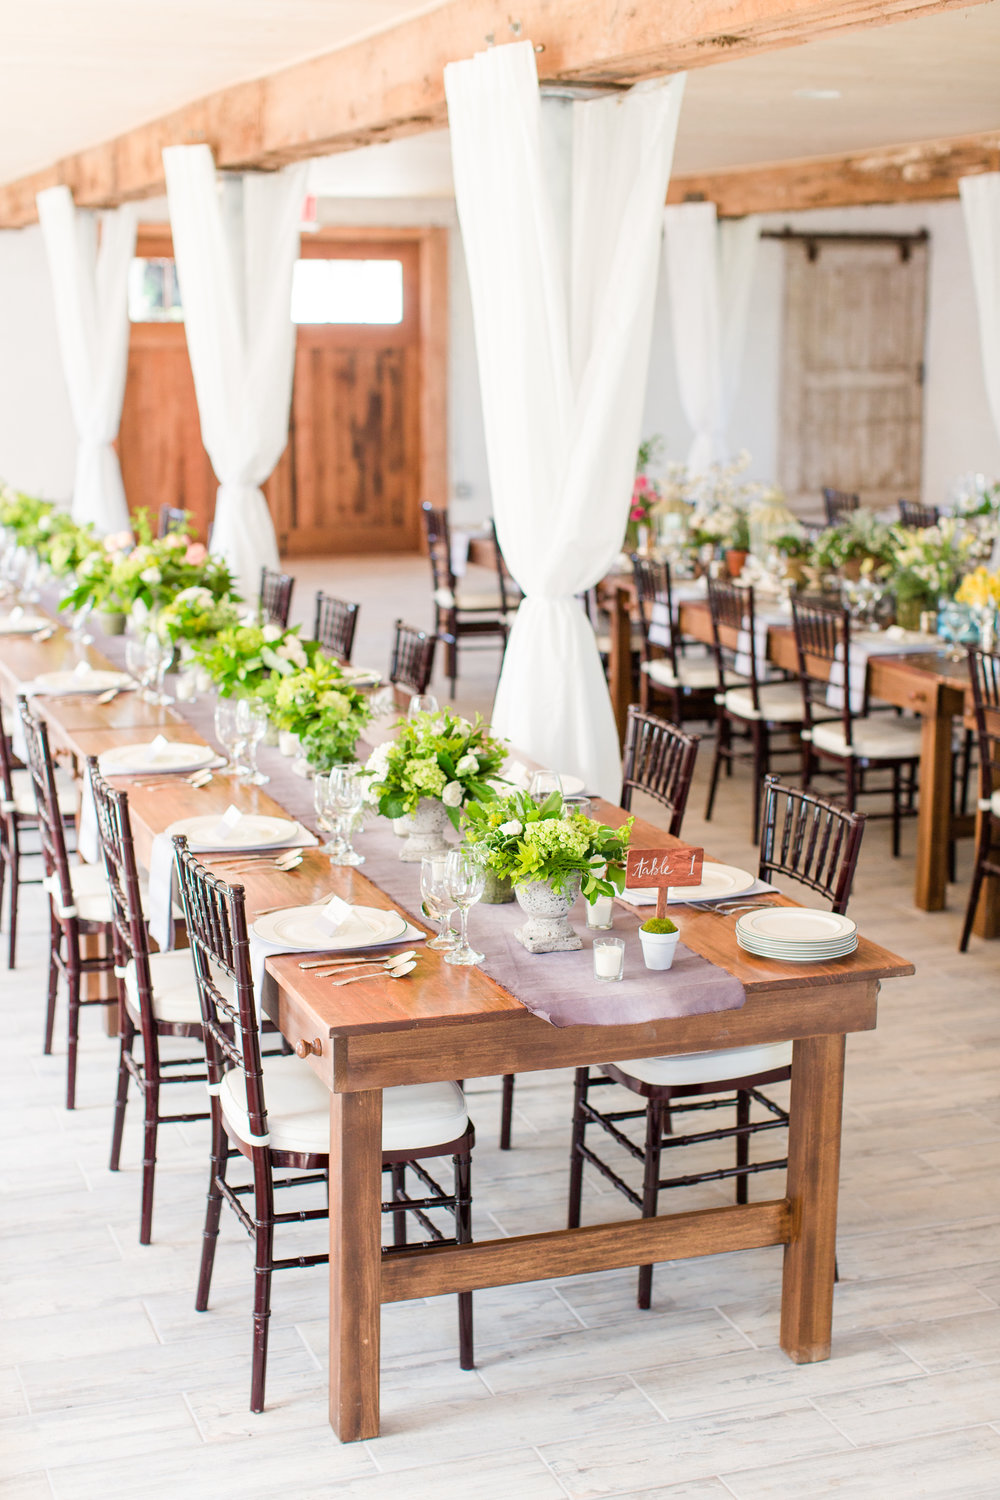 48-fields-farm-leesburg-va-tuesdays-together-styled-dinner-14.jpg